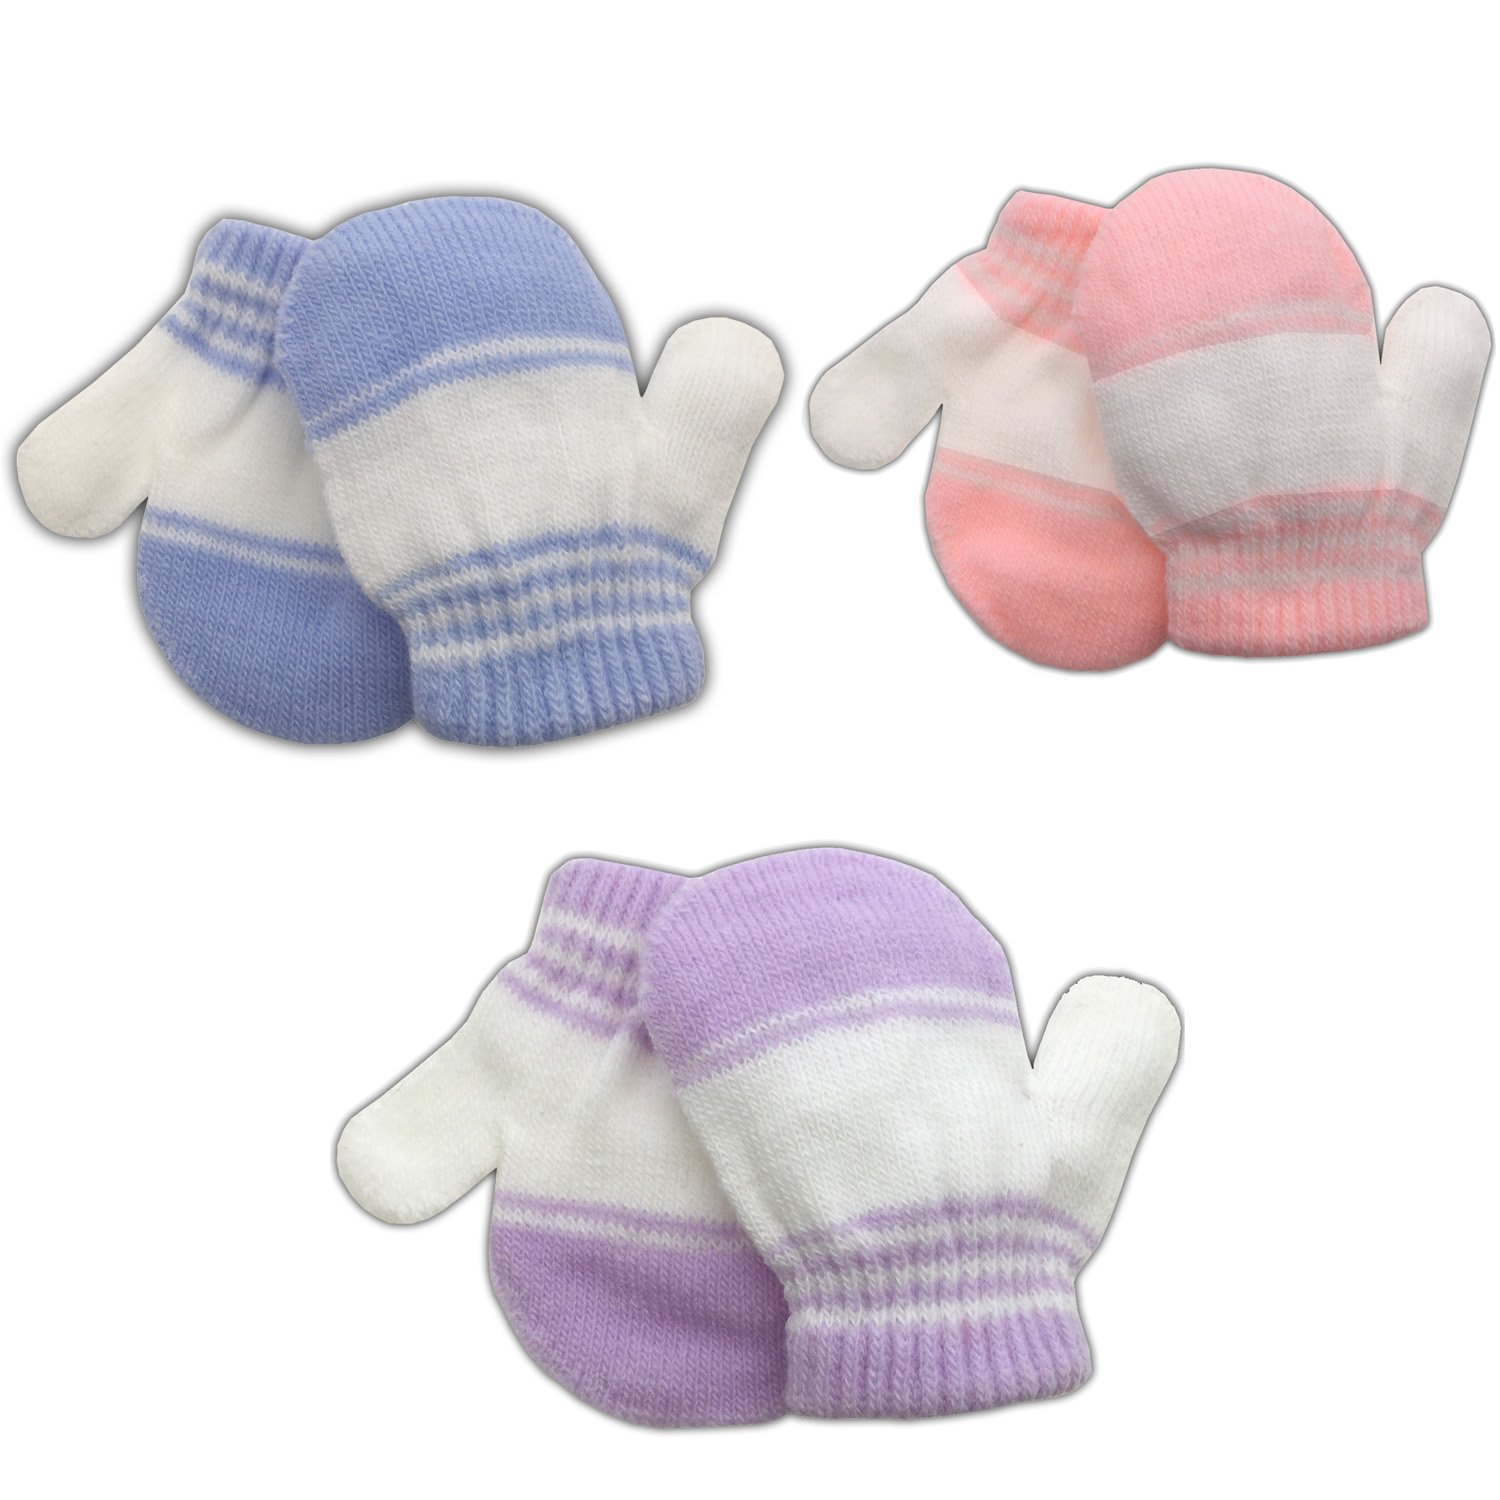 3 Pack Infant Baby Boys Mittens Warm Knitted for Winter Pink Purple) 4521MGP